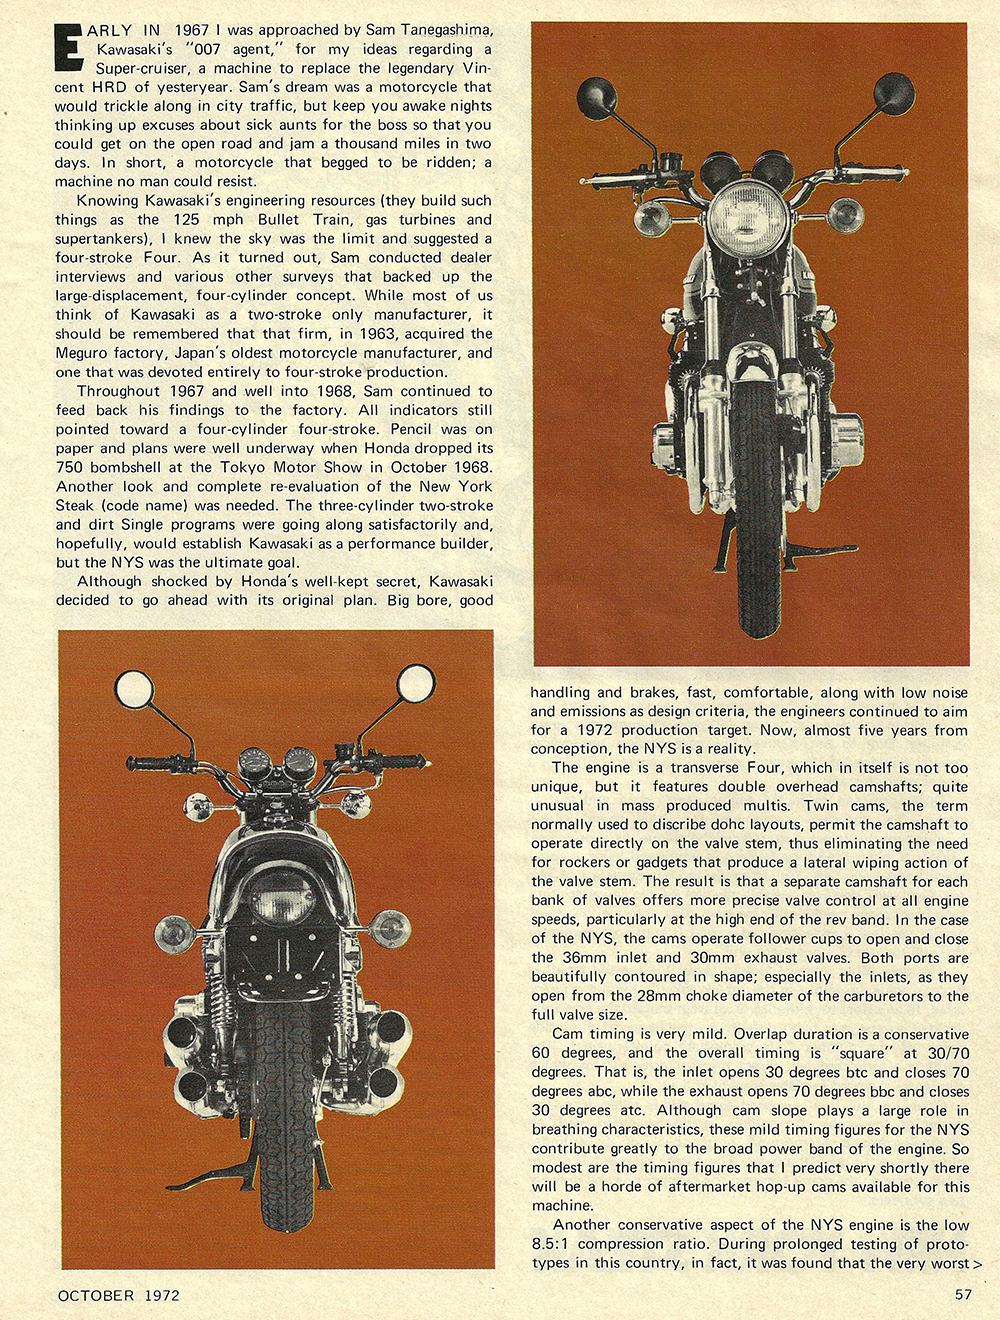 1972 Kawasaki Z1 900 New York Steak road test 02.jpg